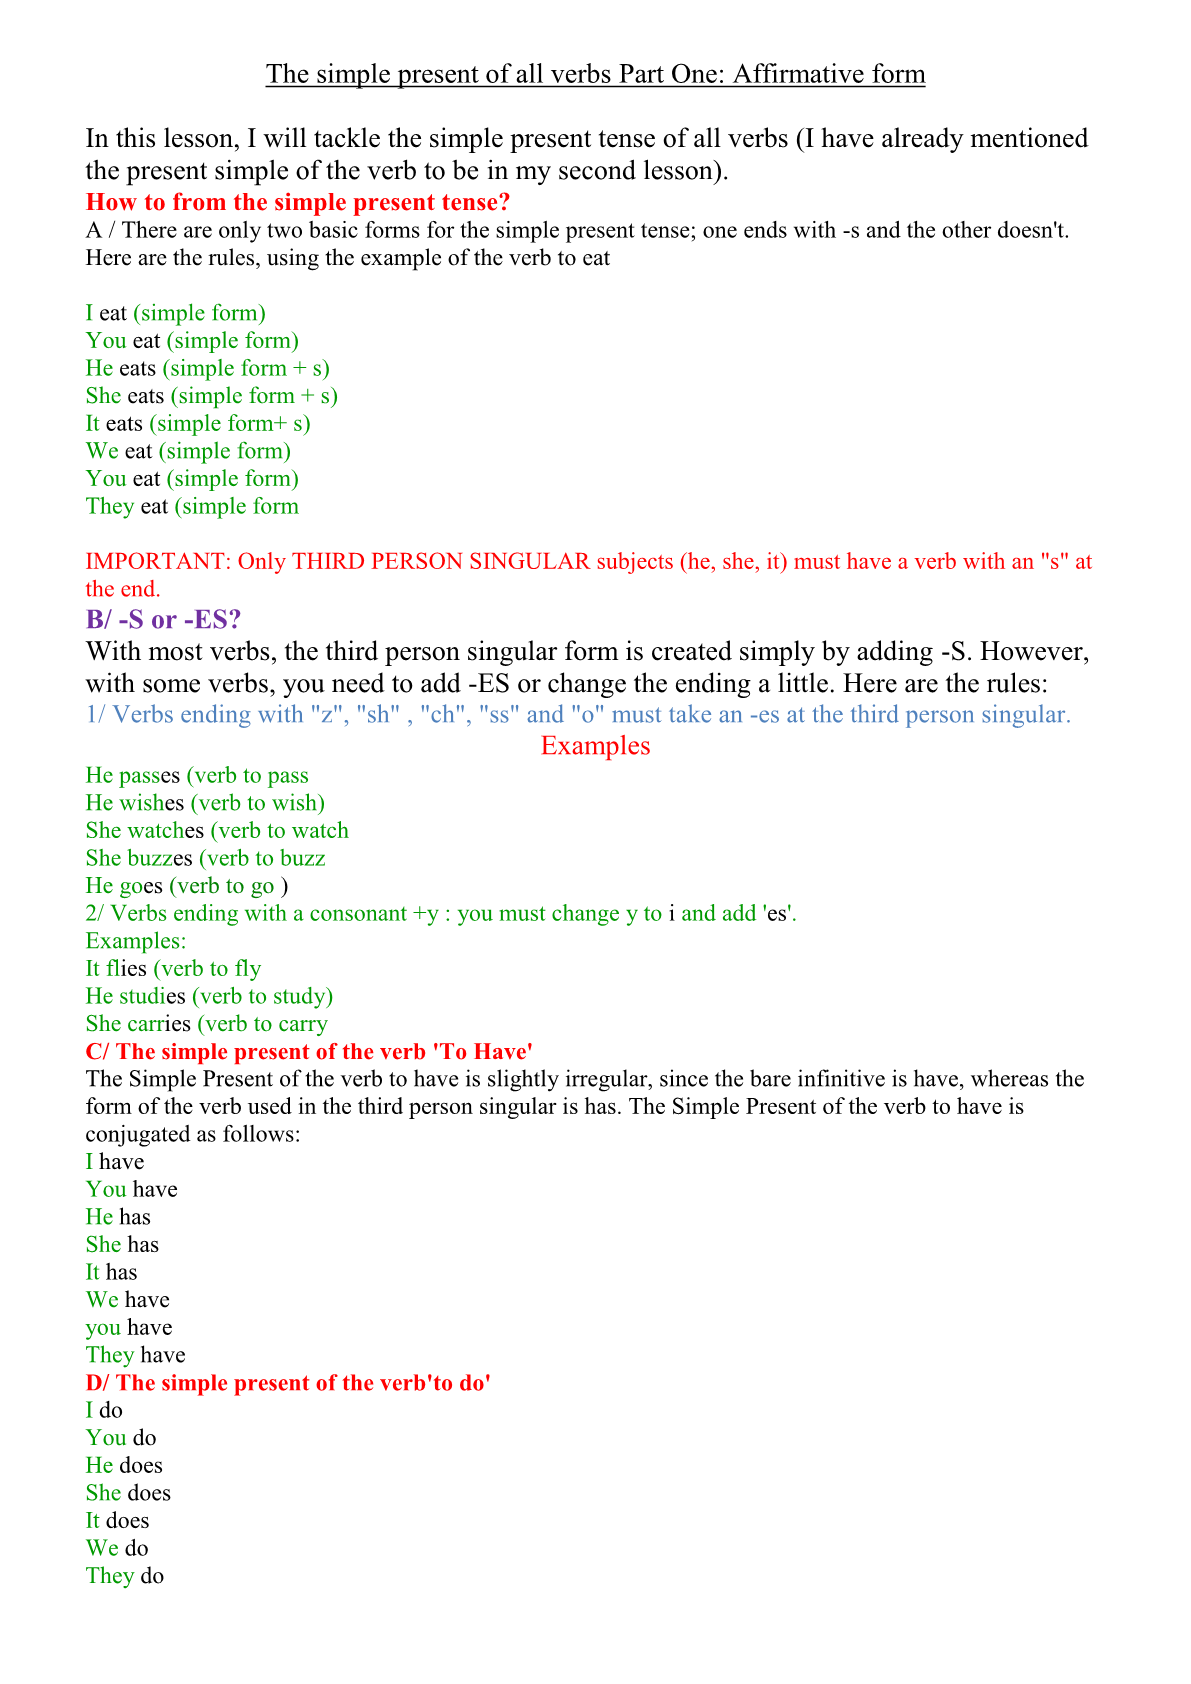 The simple present of all verbs Part One